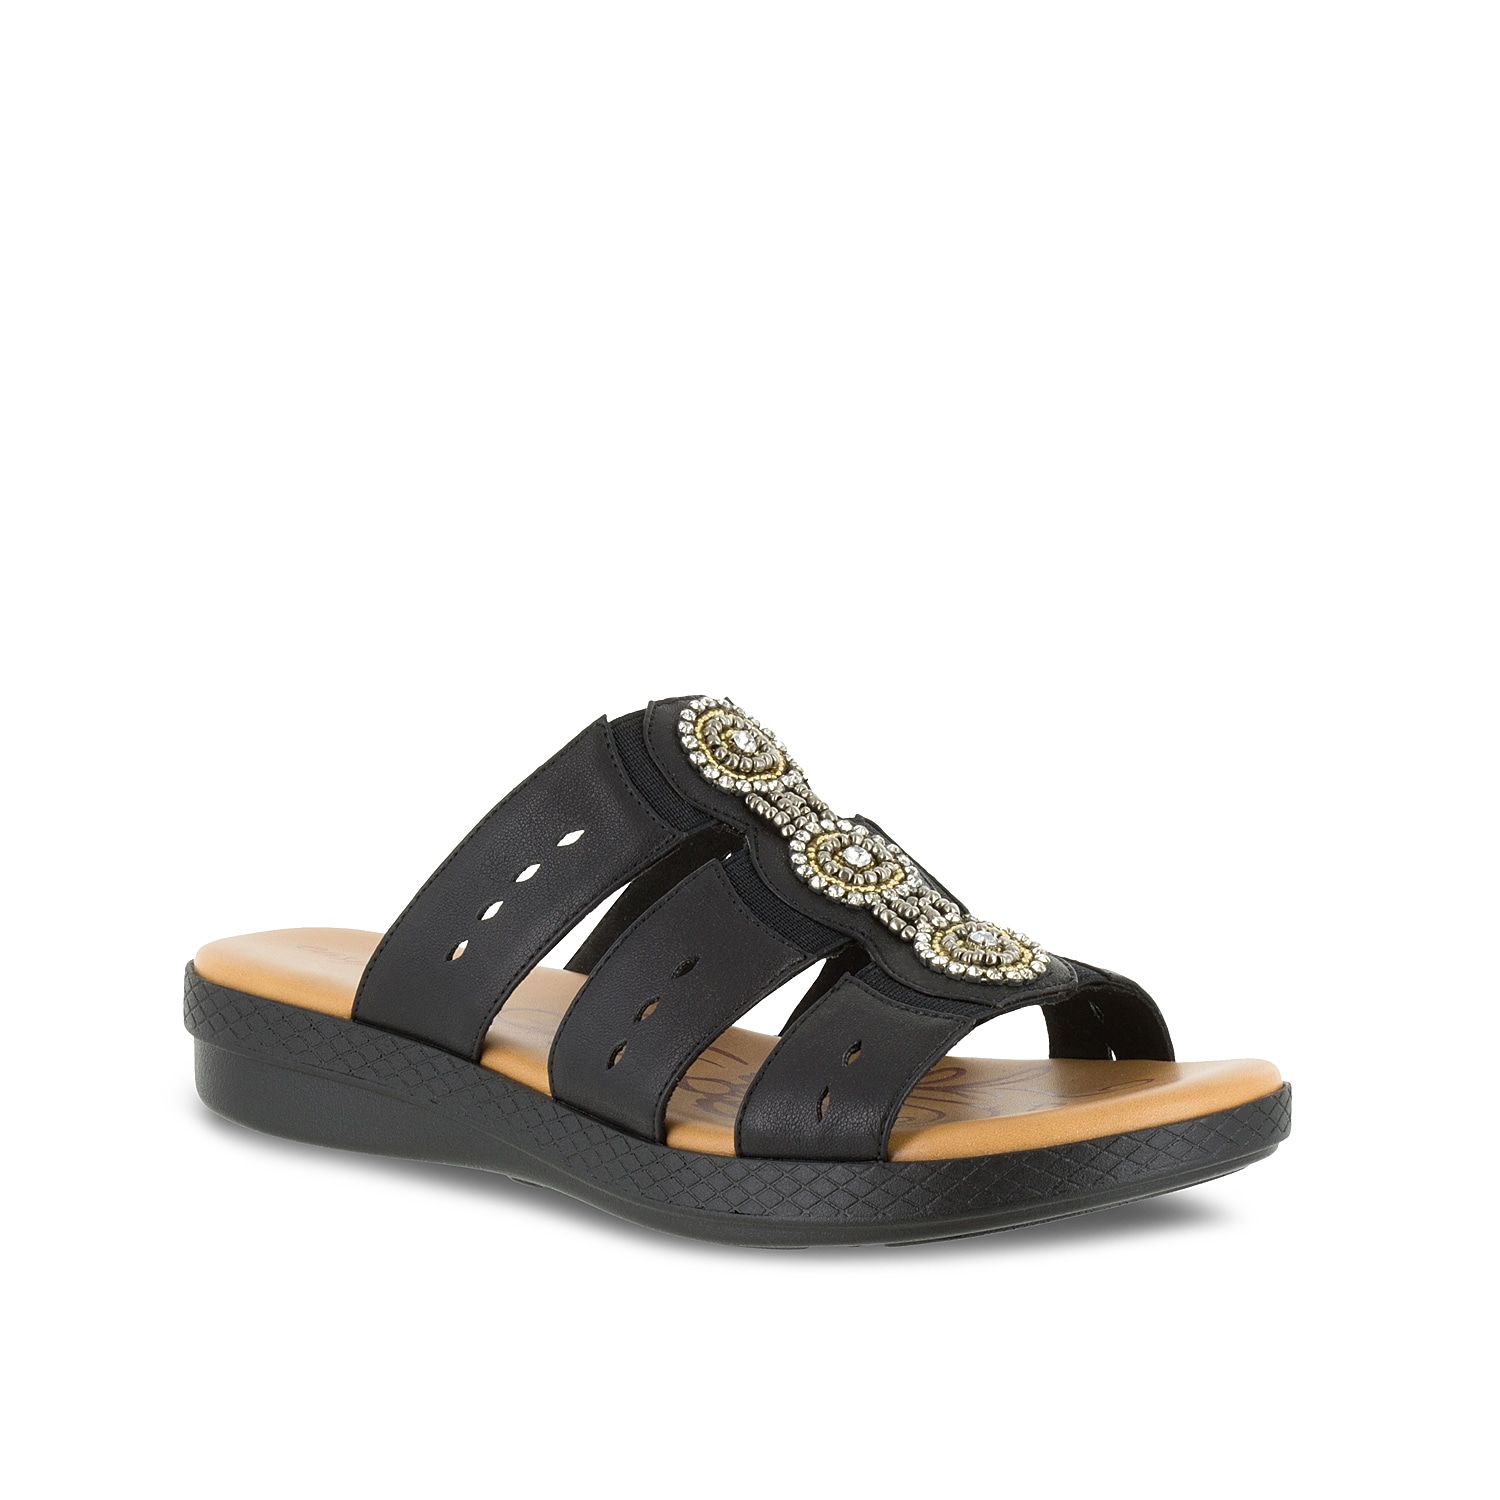 Slip on the Nori slide sandals from Easy Street to complement your classic style! Comfy and versatile, these strappy sandals are the perfect flat sandals to pair with anything in your summer wardrobe!